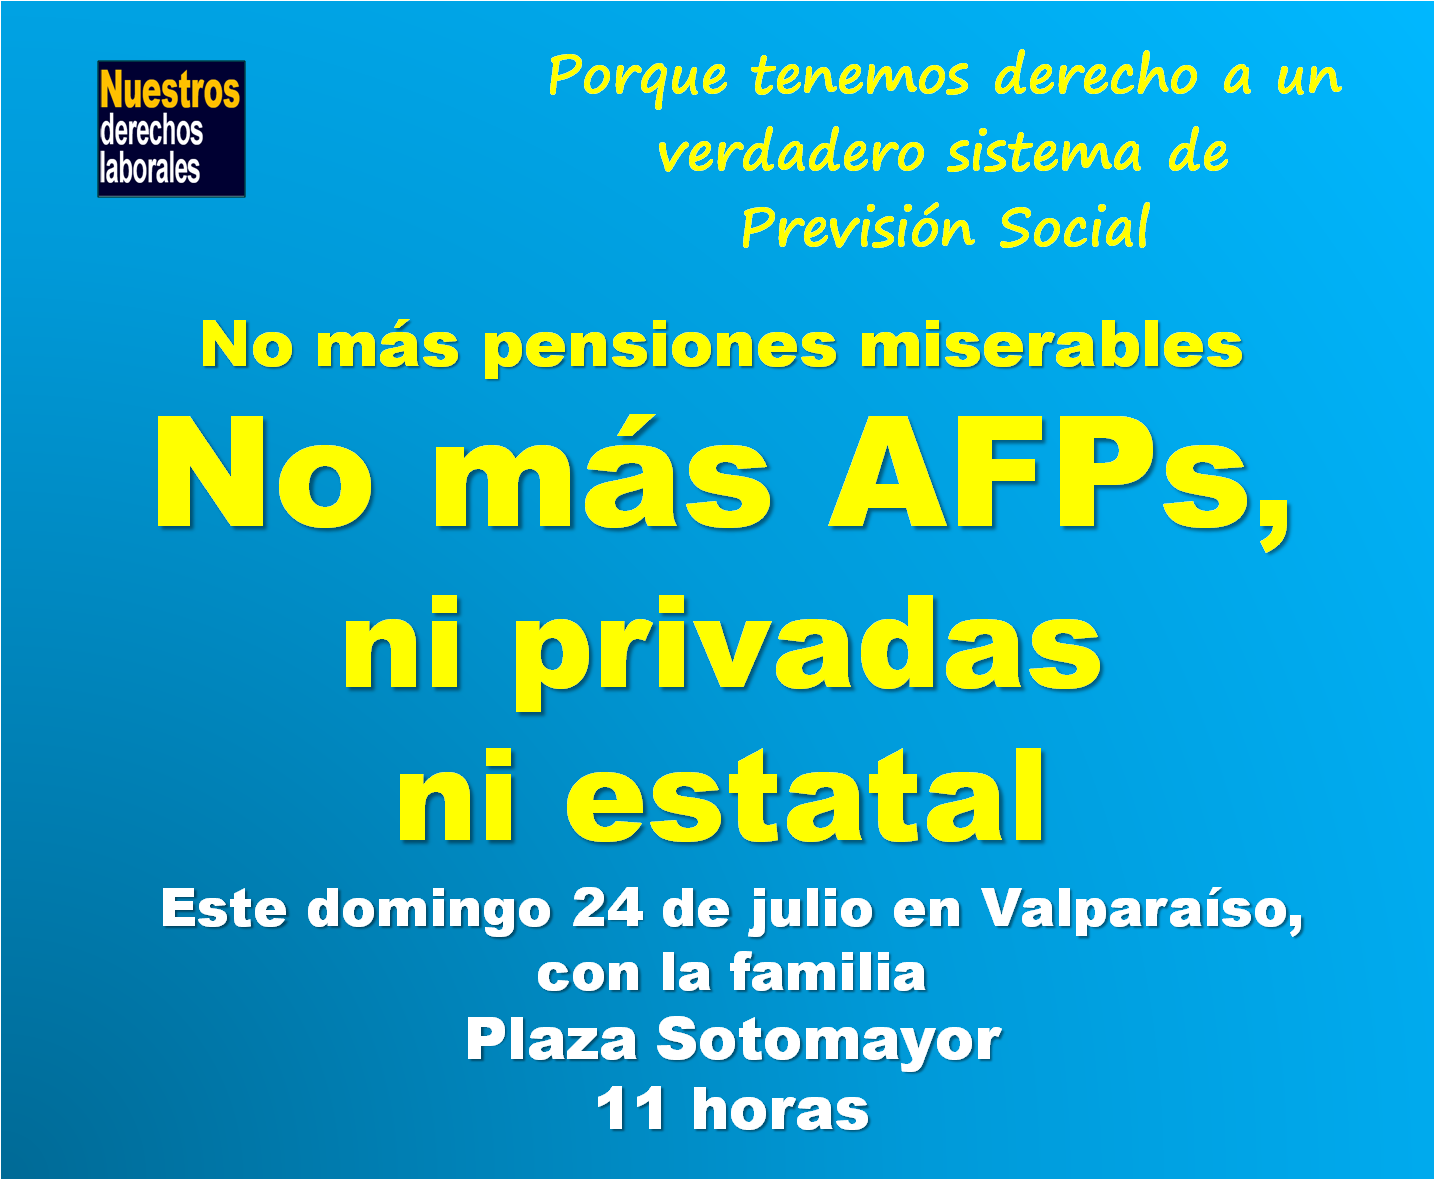 No más AFPs, ni privadas ni estatal. Valparaíso, domingo 24 de julio, 11 horas.